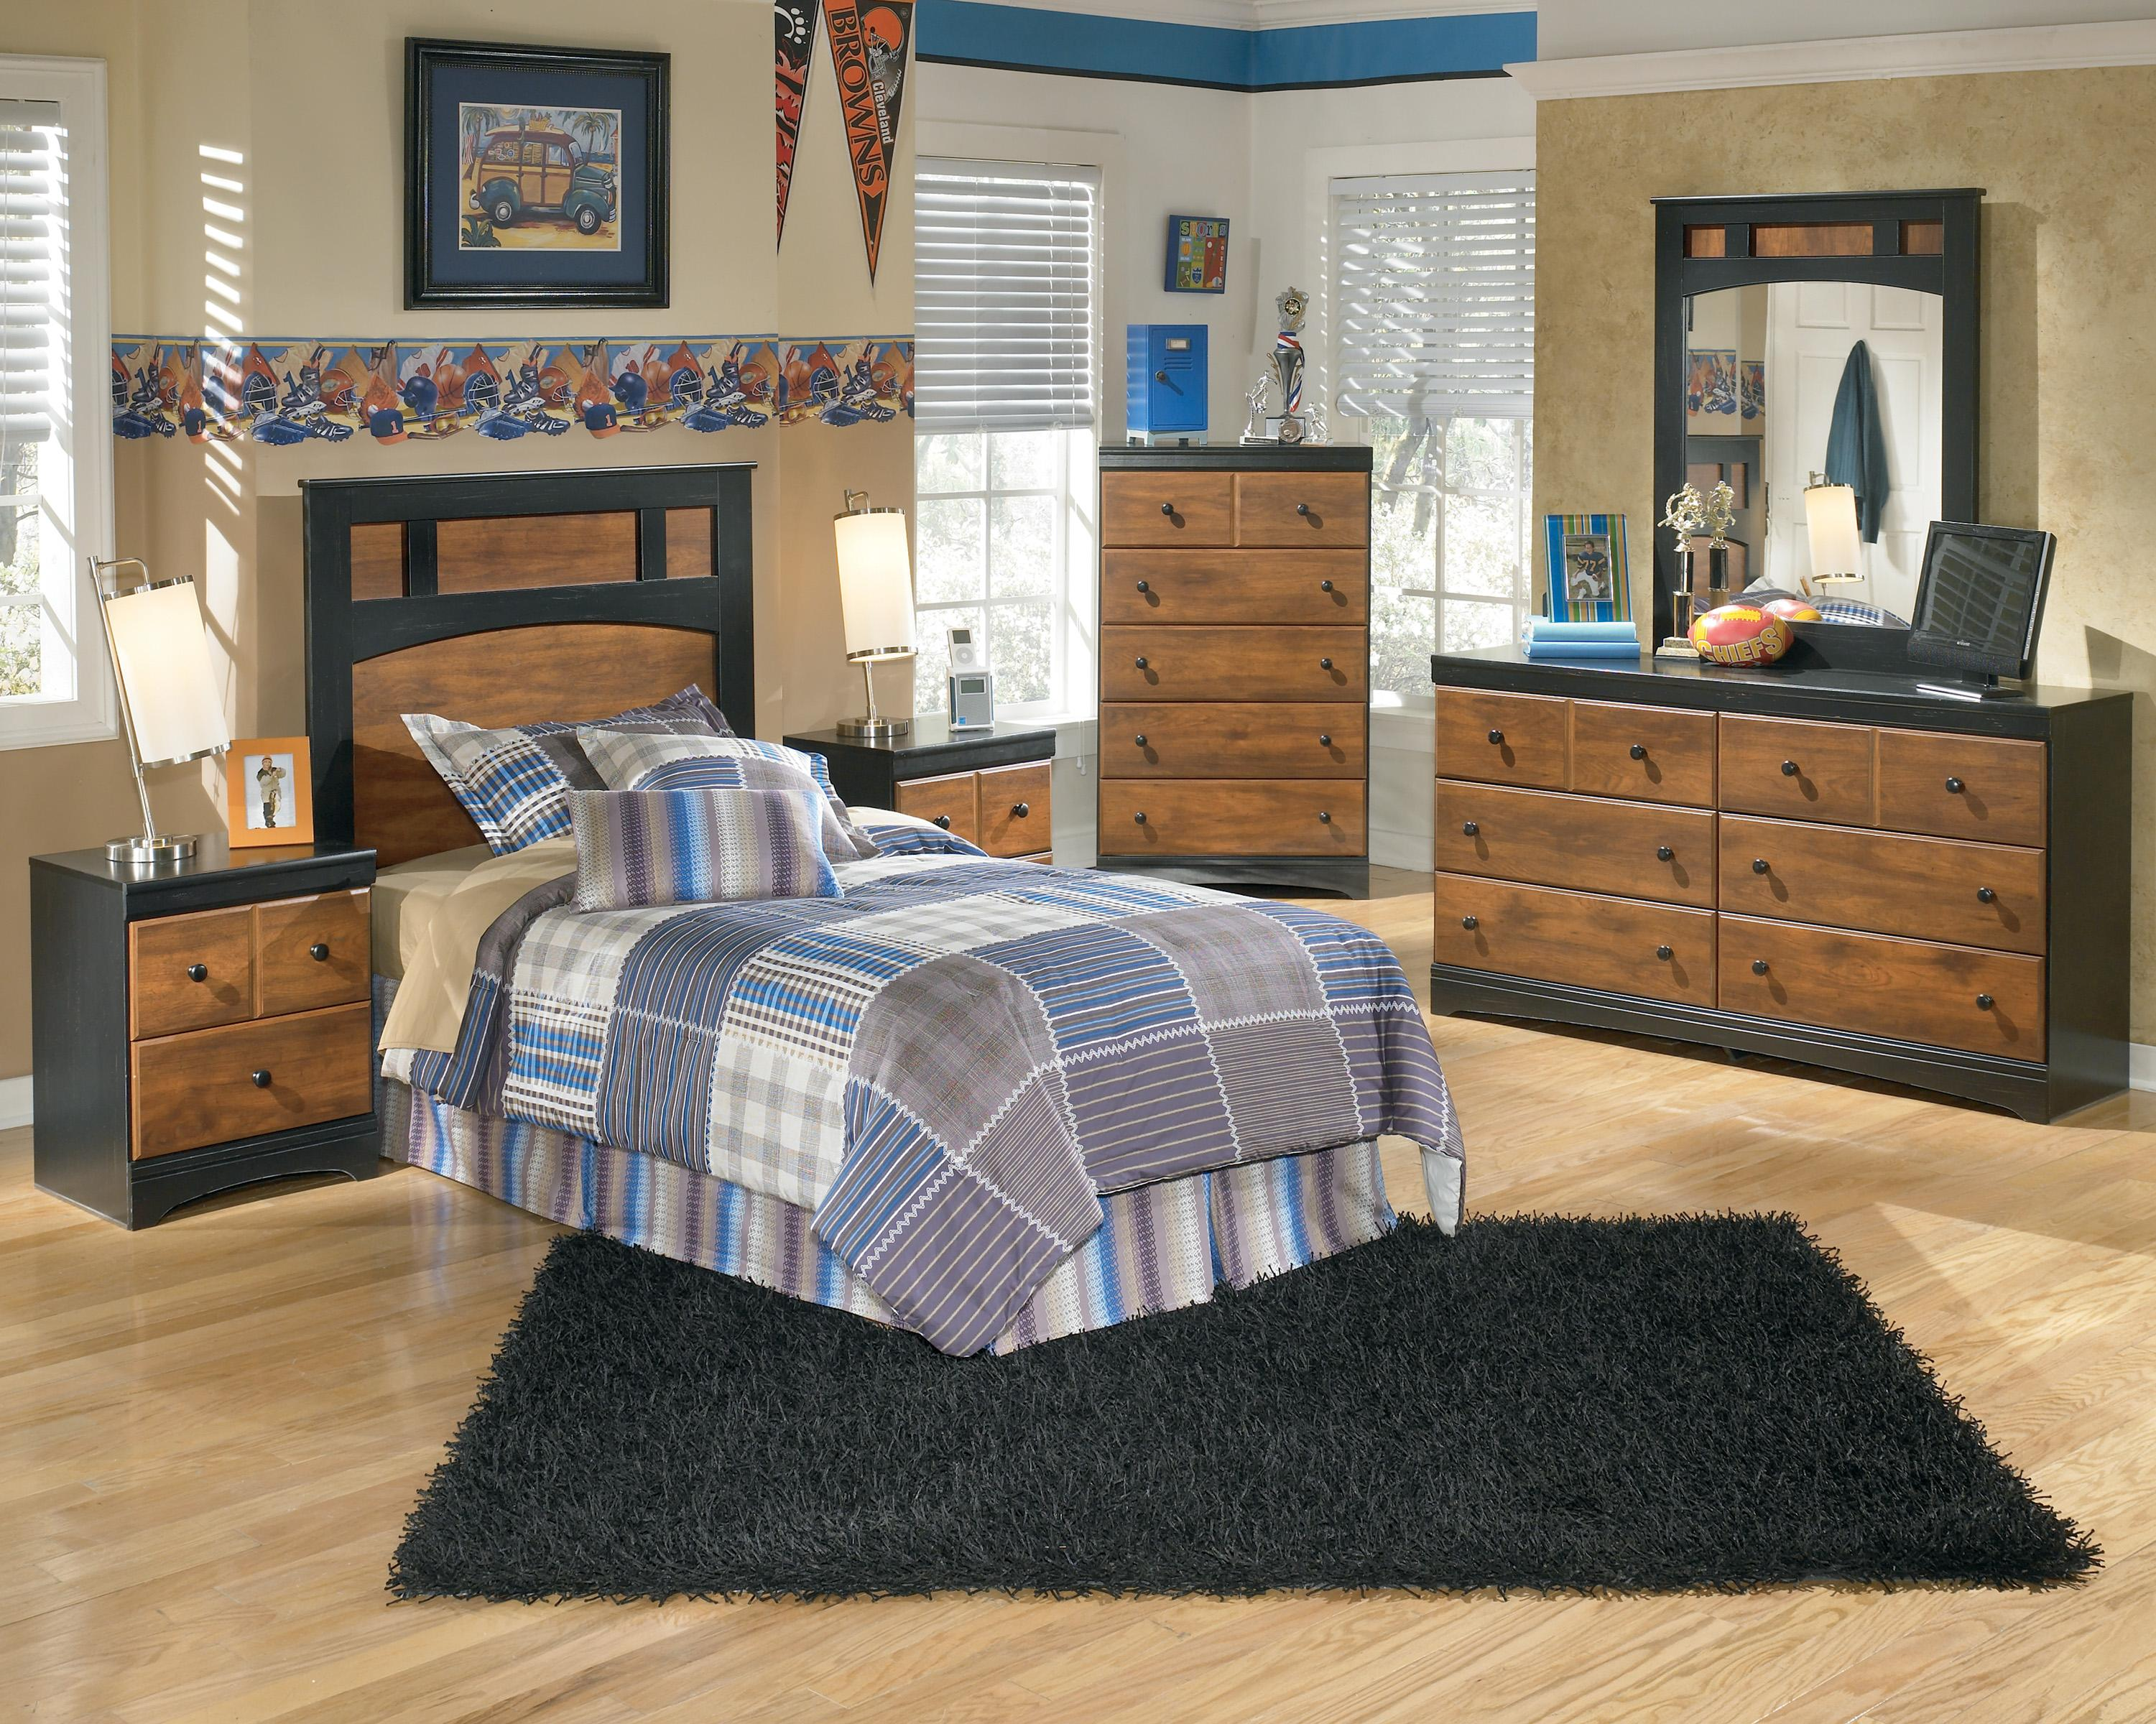 Signature Design by Ashley Aimwell Twin Bedroom Group - Item Number: B136 T Bedroom Group 1